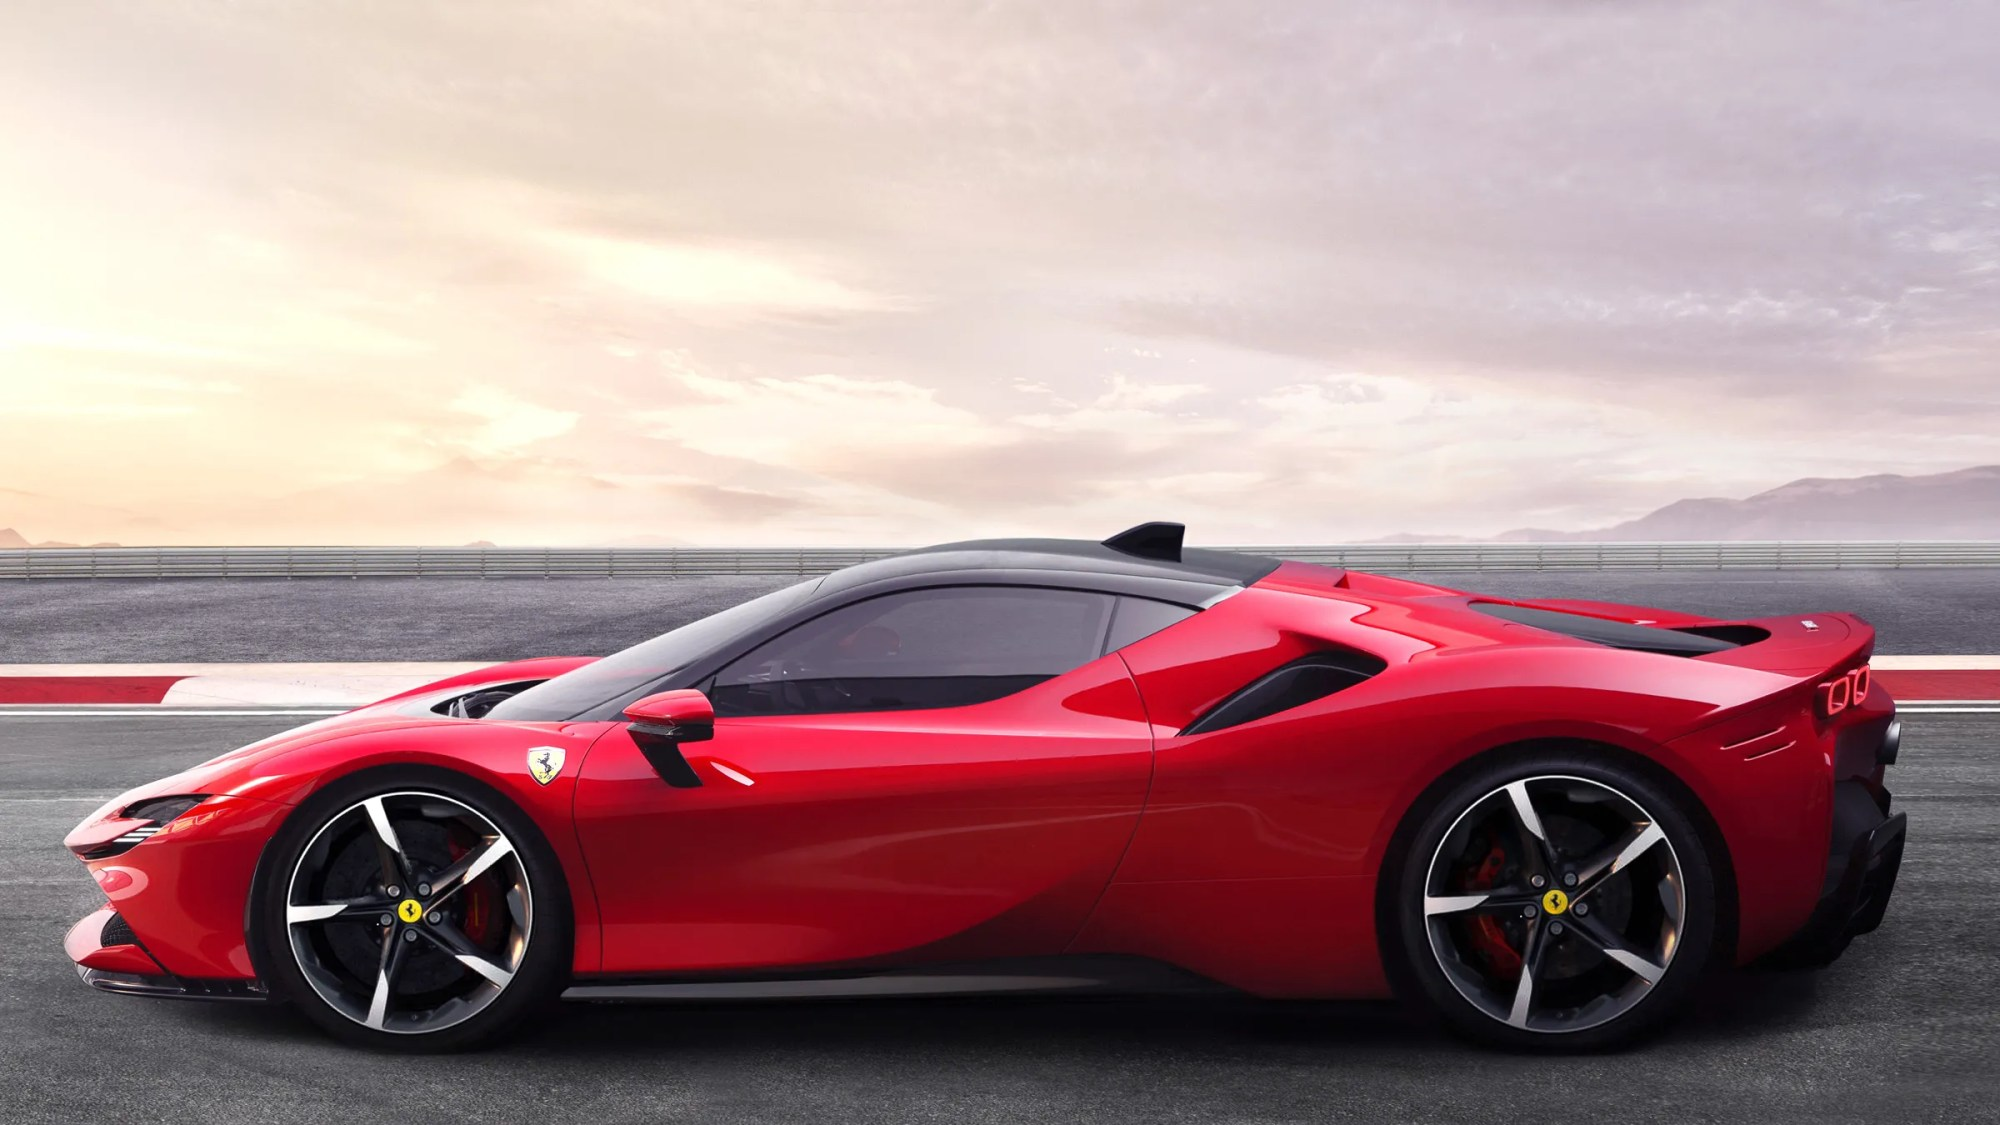 hight resolution of ferrari s latest goes 211 mph with 986 hp and it s a hybrid